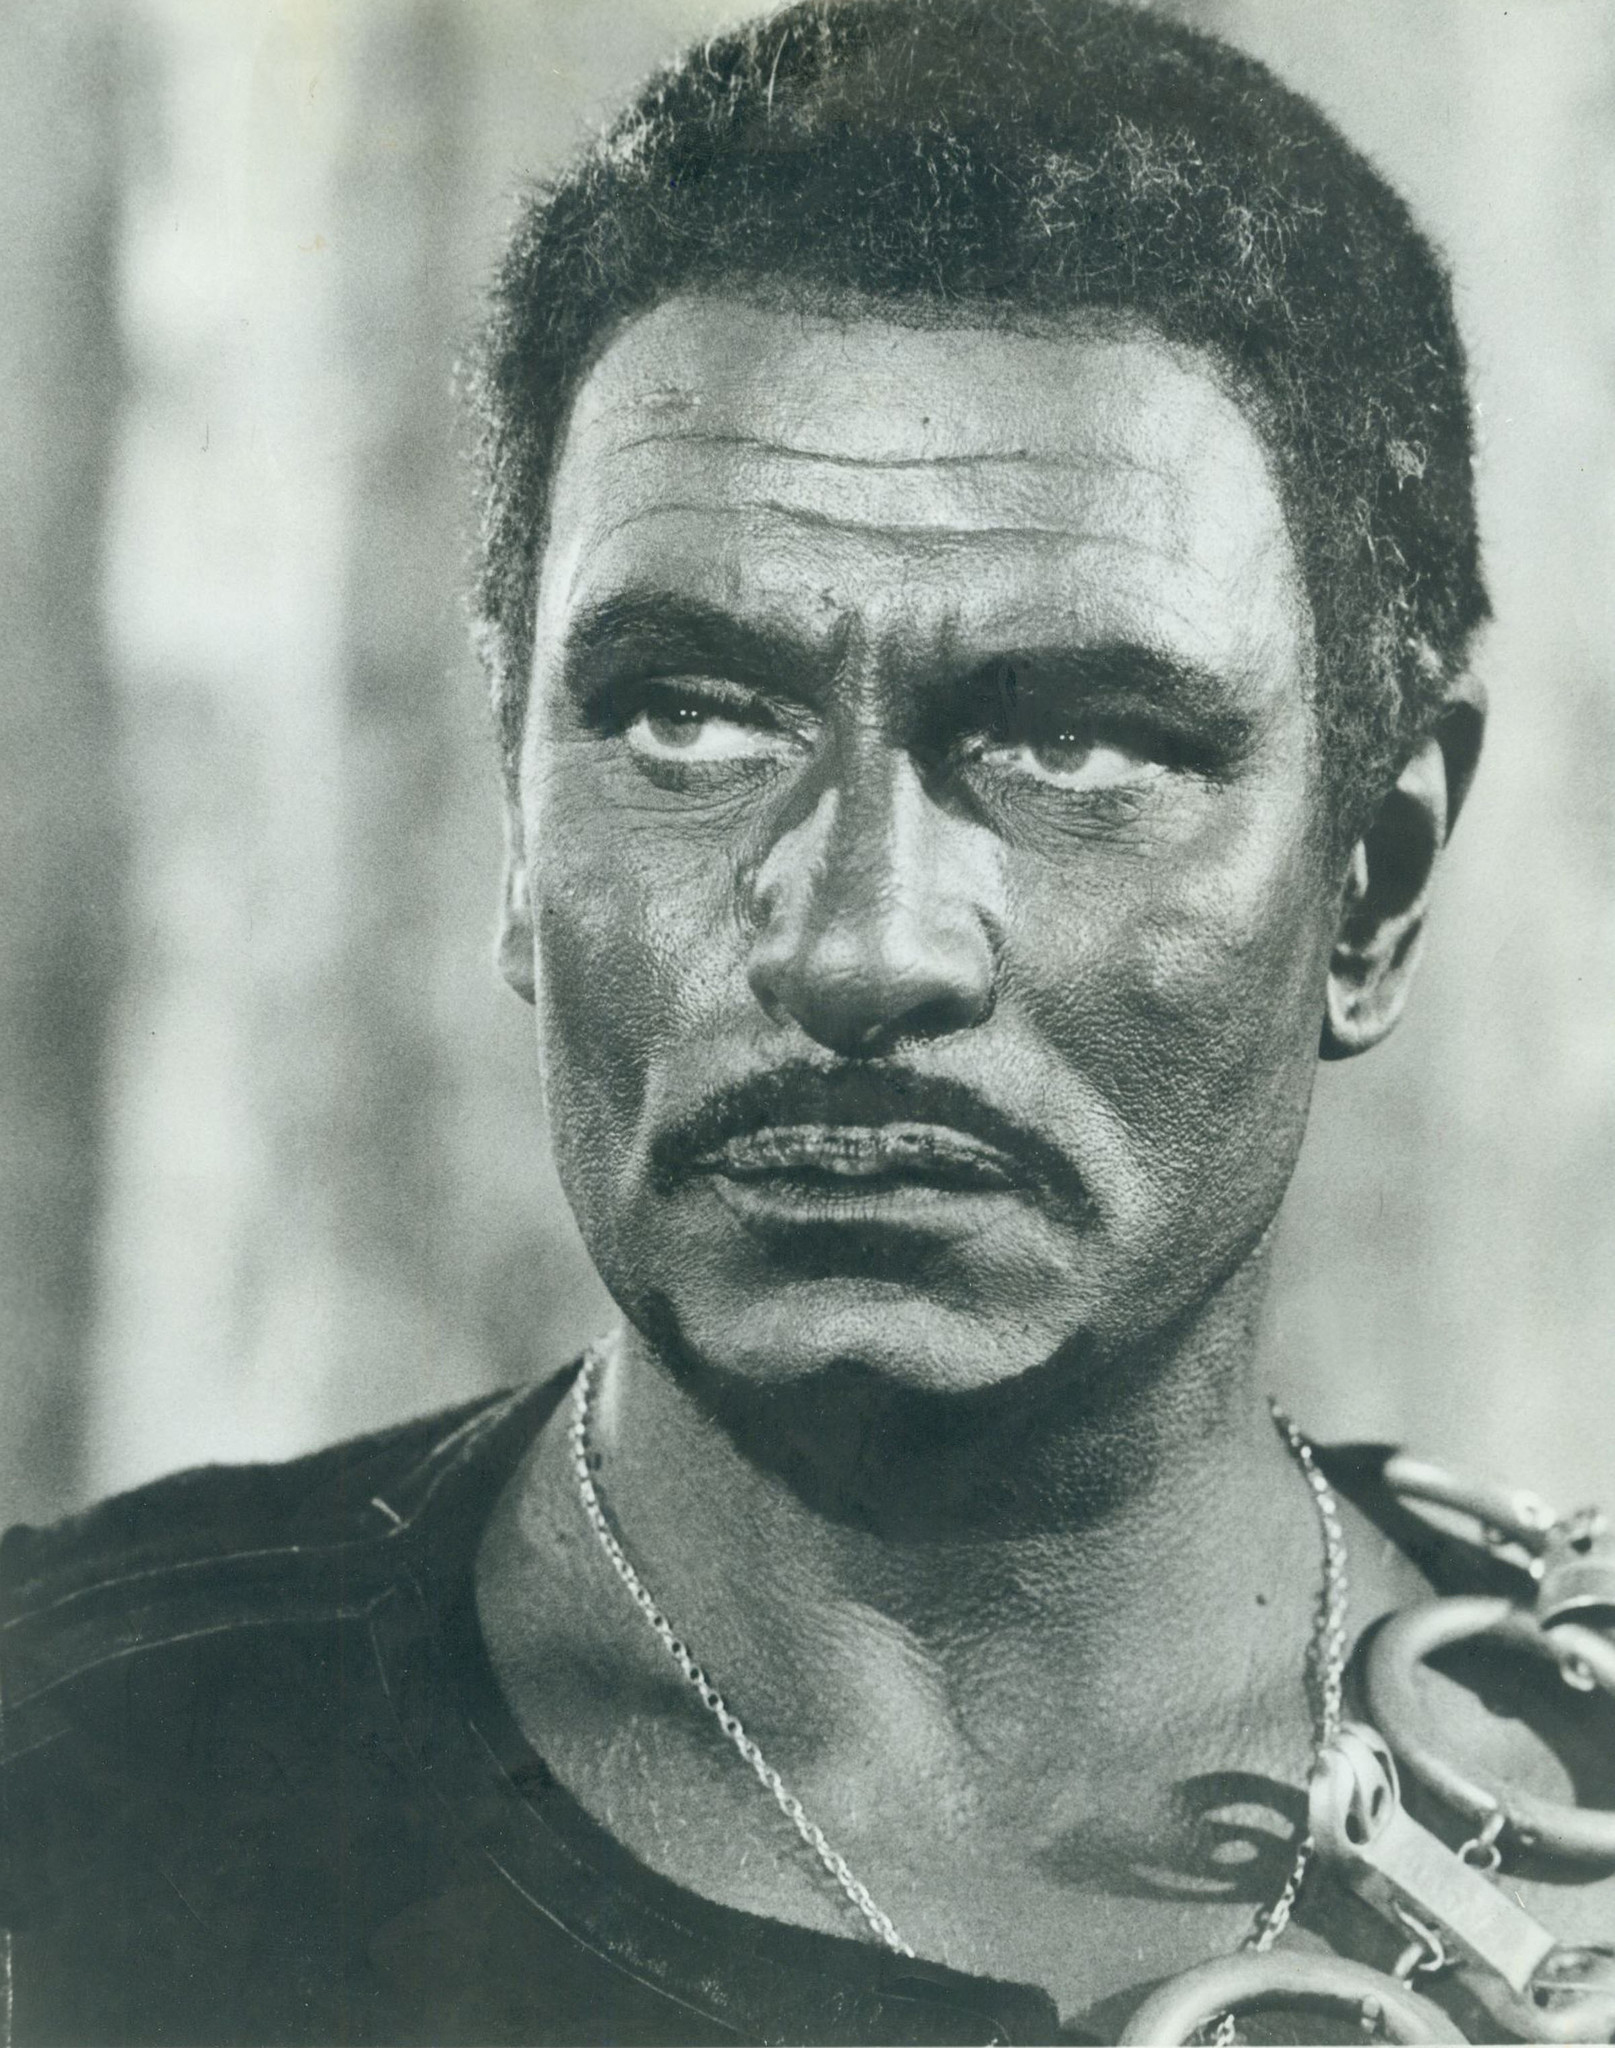 Laurence Olivier portrays Othello in blackface in the 1965 film.